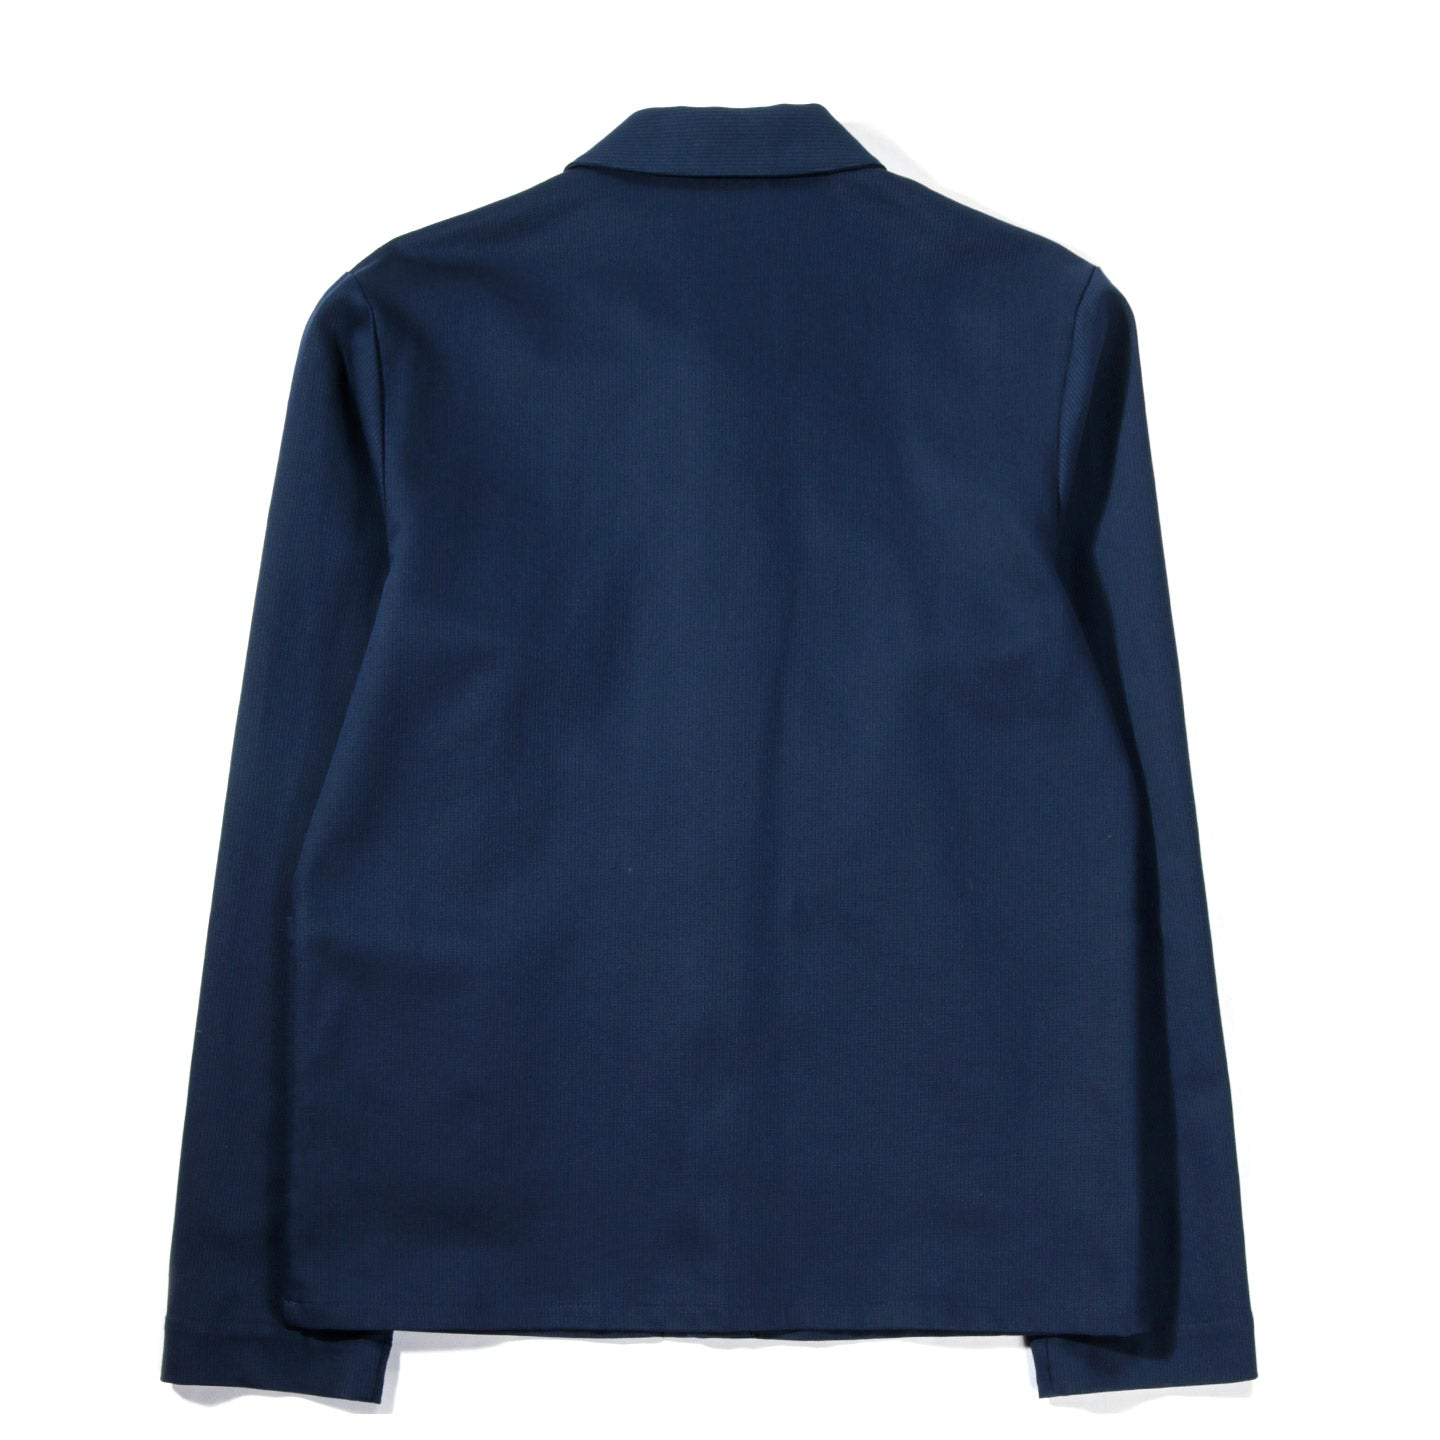 A.P.C. KERLOUAN JACKET NAVY BLUE